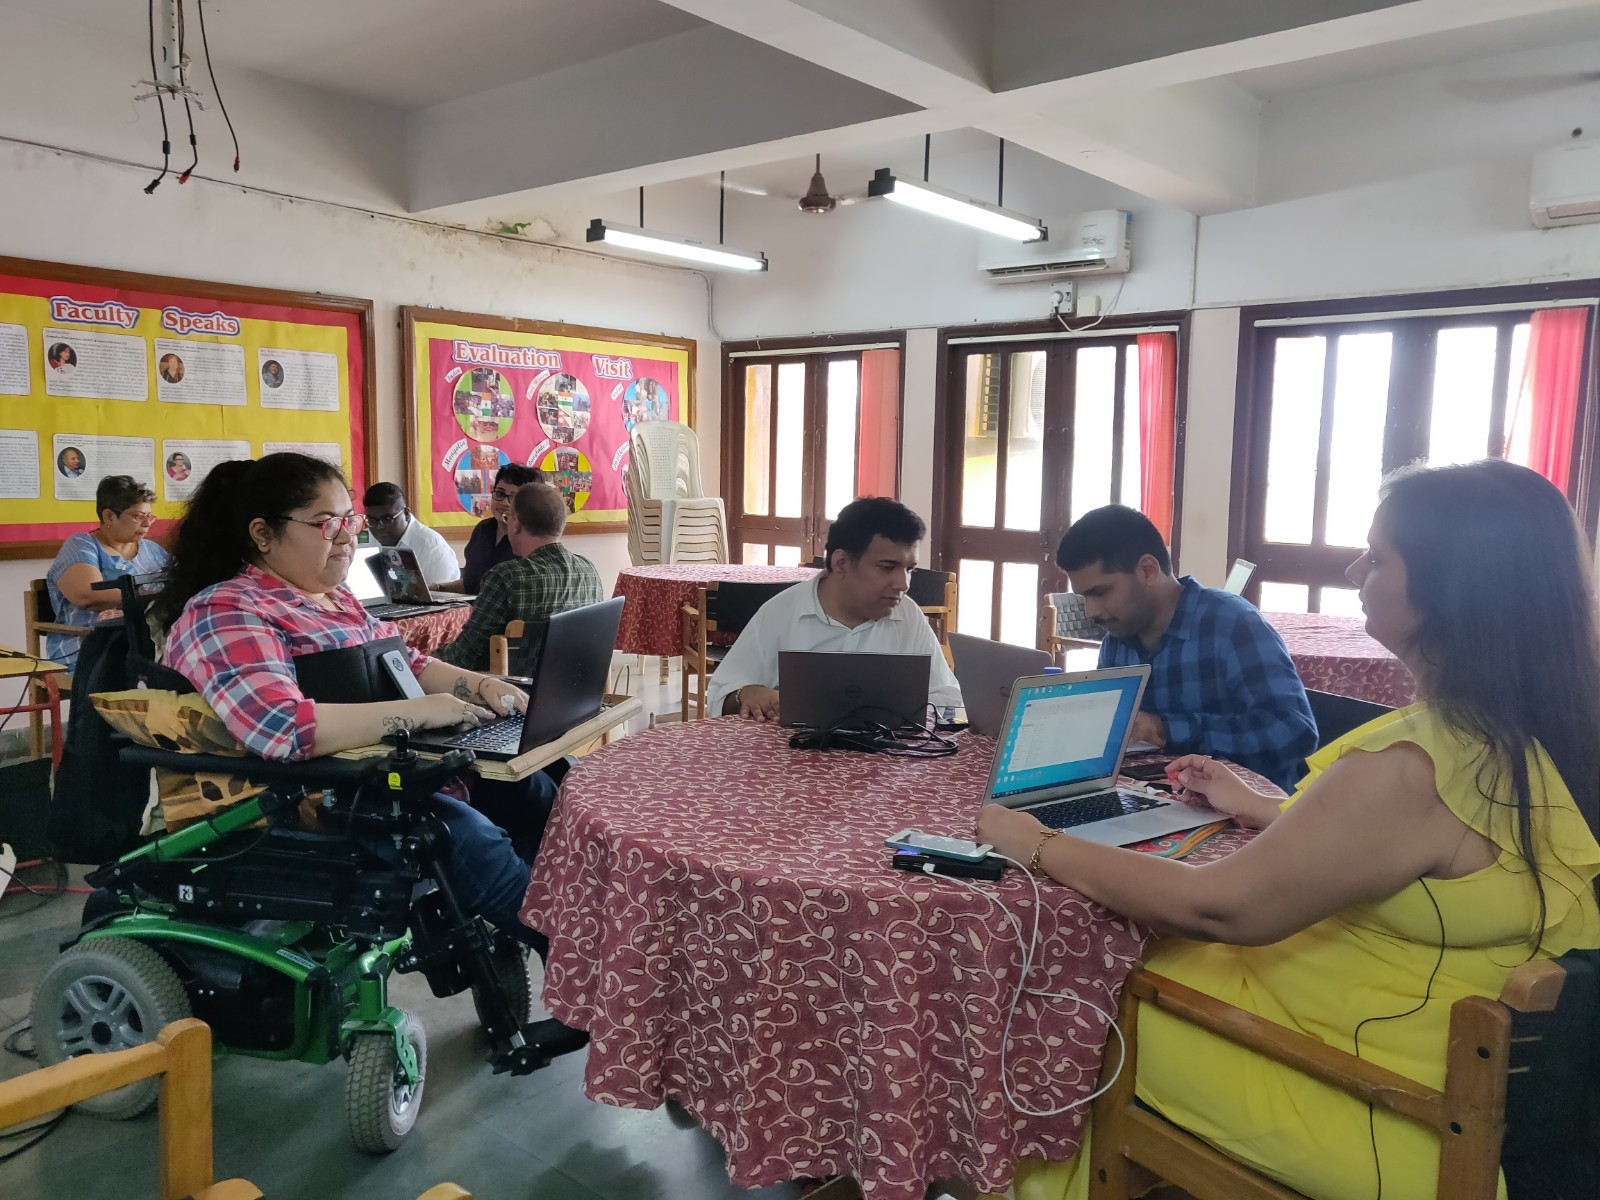 Editathon, august- disabled and non disabled participants sitting around tables and working on laptops at ADAPT, Bandra.. bulletin boards on the wall behind and three windows next to it